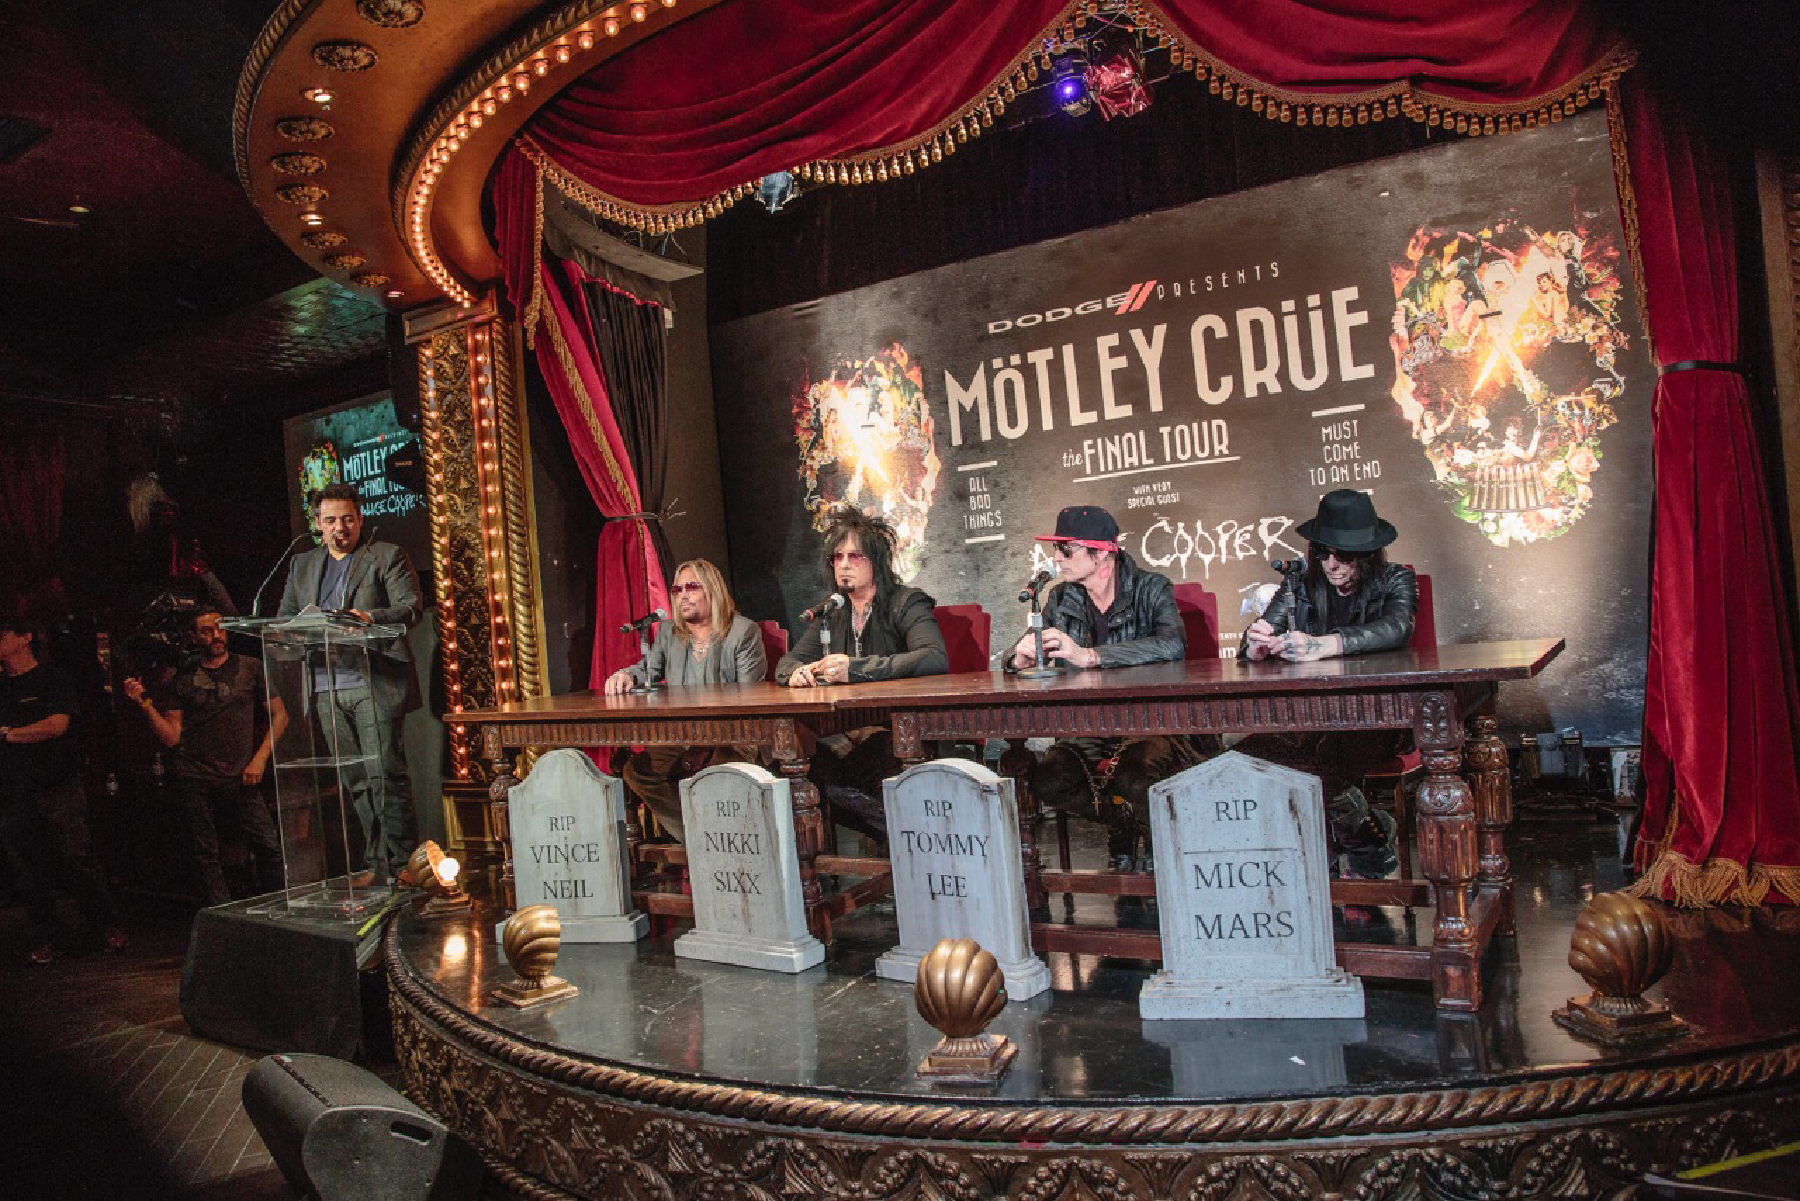 64234c14fa Mötley Crue during the press conference to announce their final tour at  Roosevelt Hotel in Hollywood.